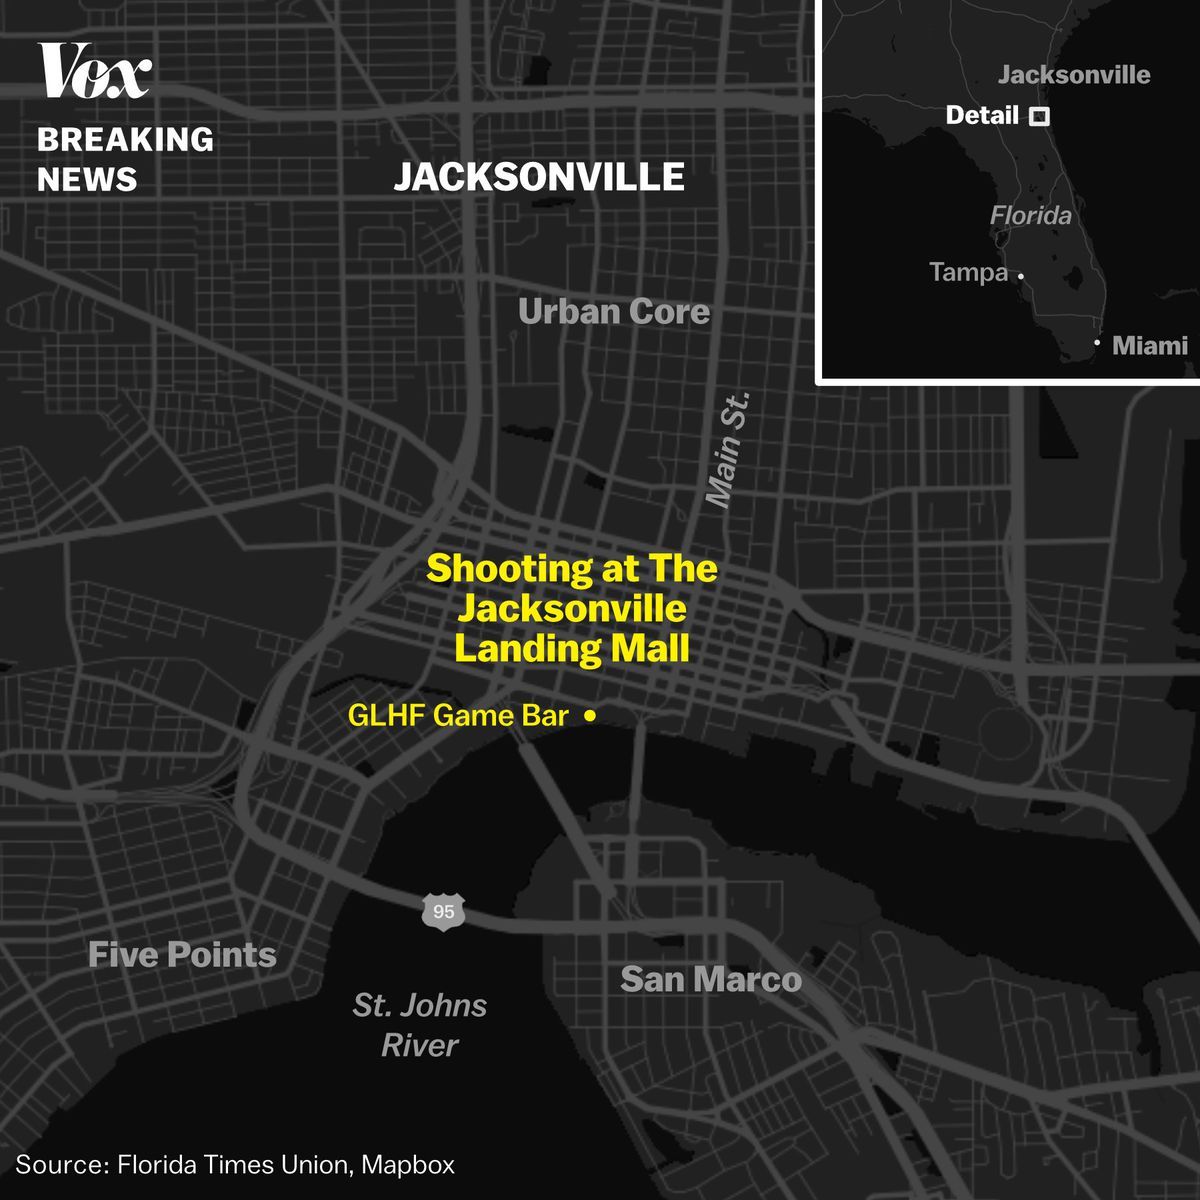 A shooter opened fire at a Madden NFL video game tournament at the Jacksonville Landing in Florida on Sunday.